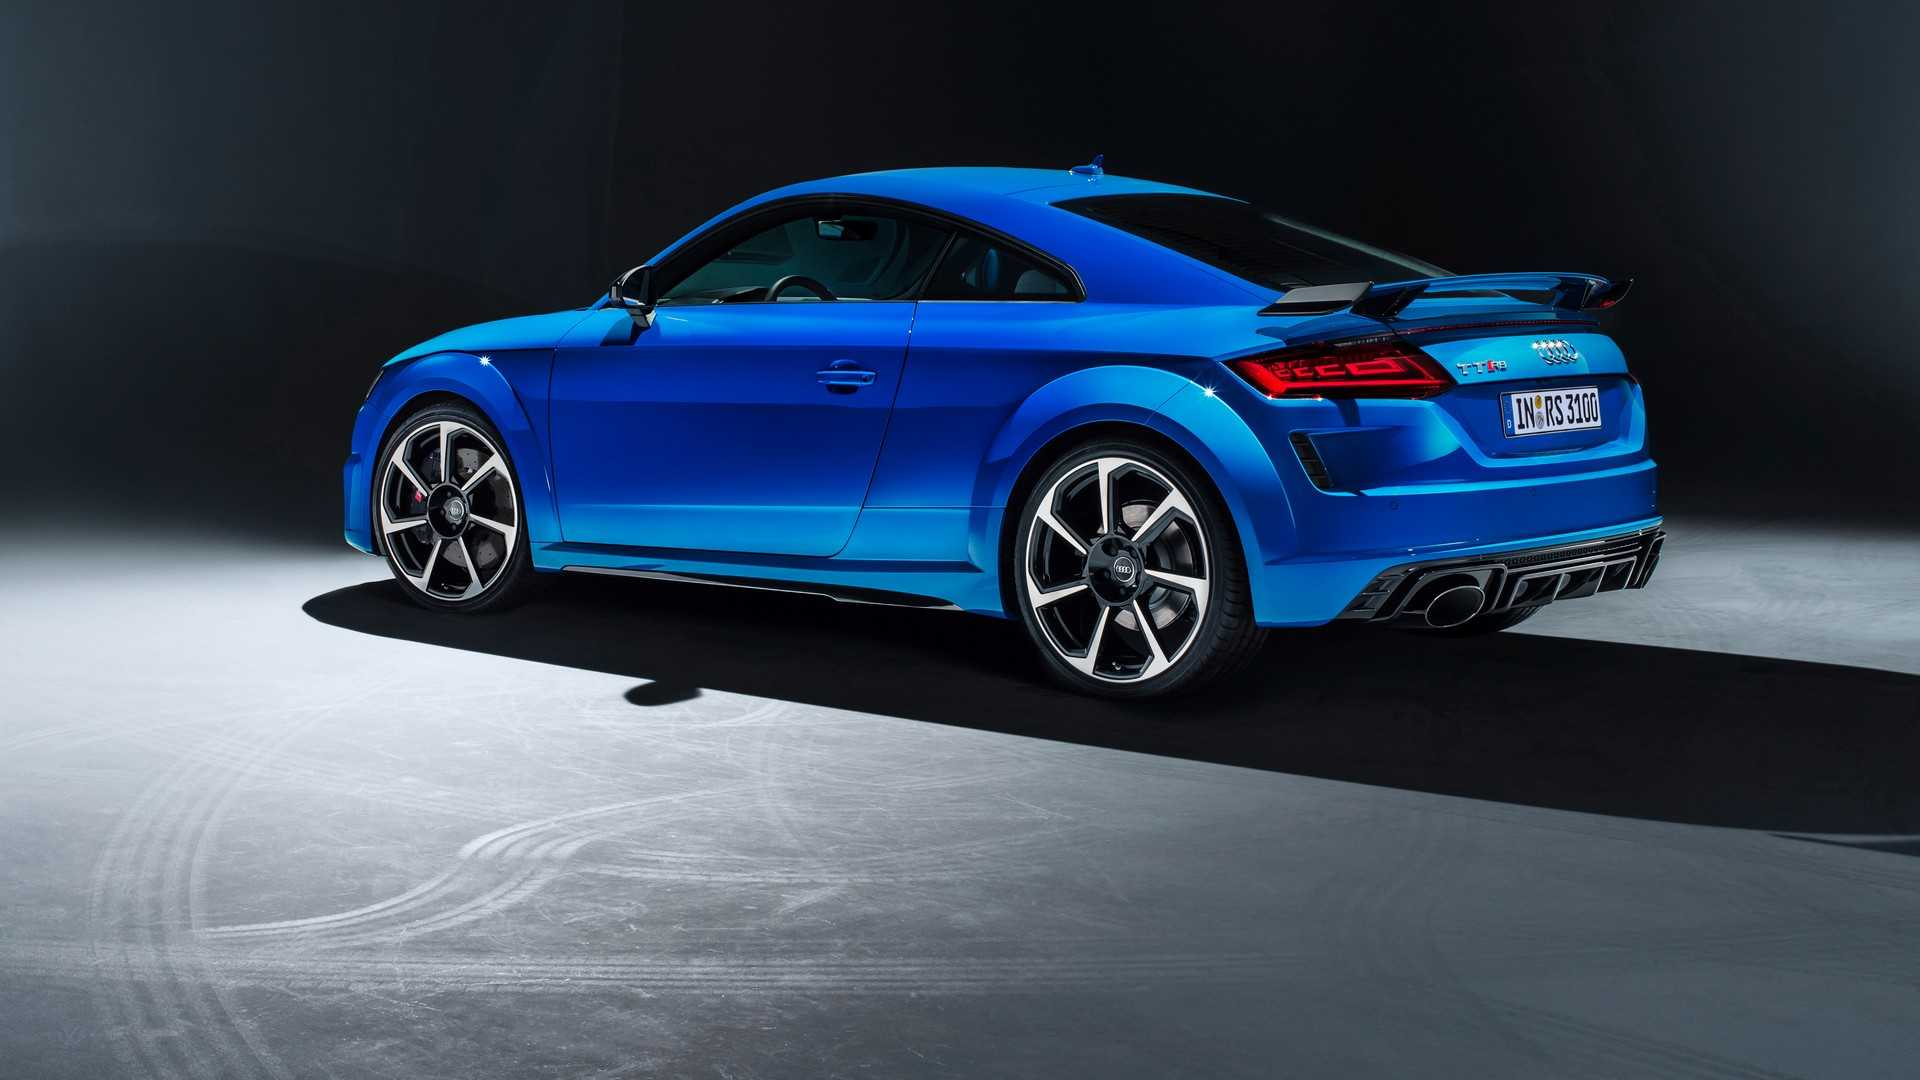 35 Best Review New Audi Tt Rs Plus 2019 Price And Review Picture with New Audi Tt Rs Plus 2019 Price And Review